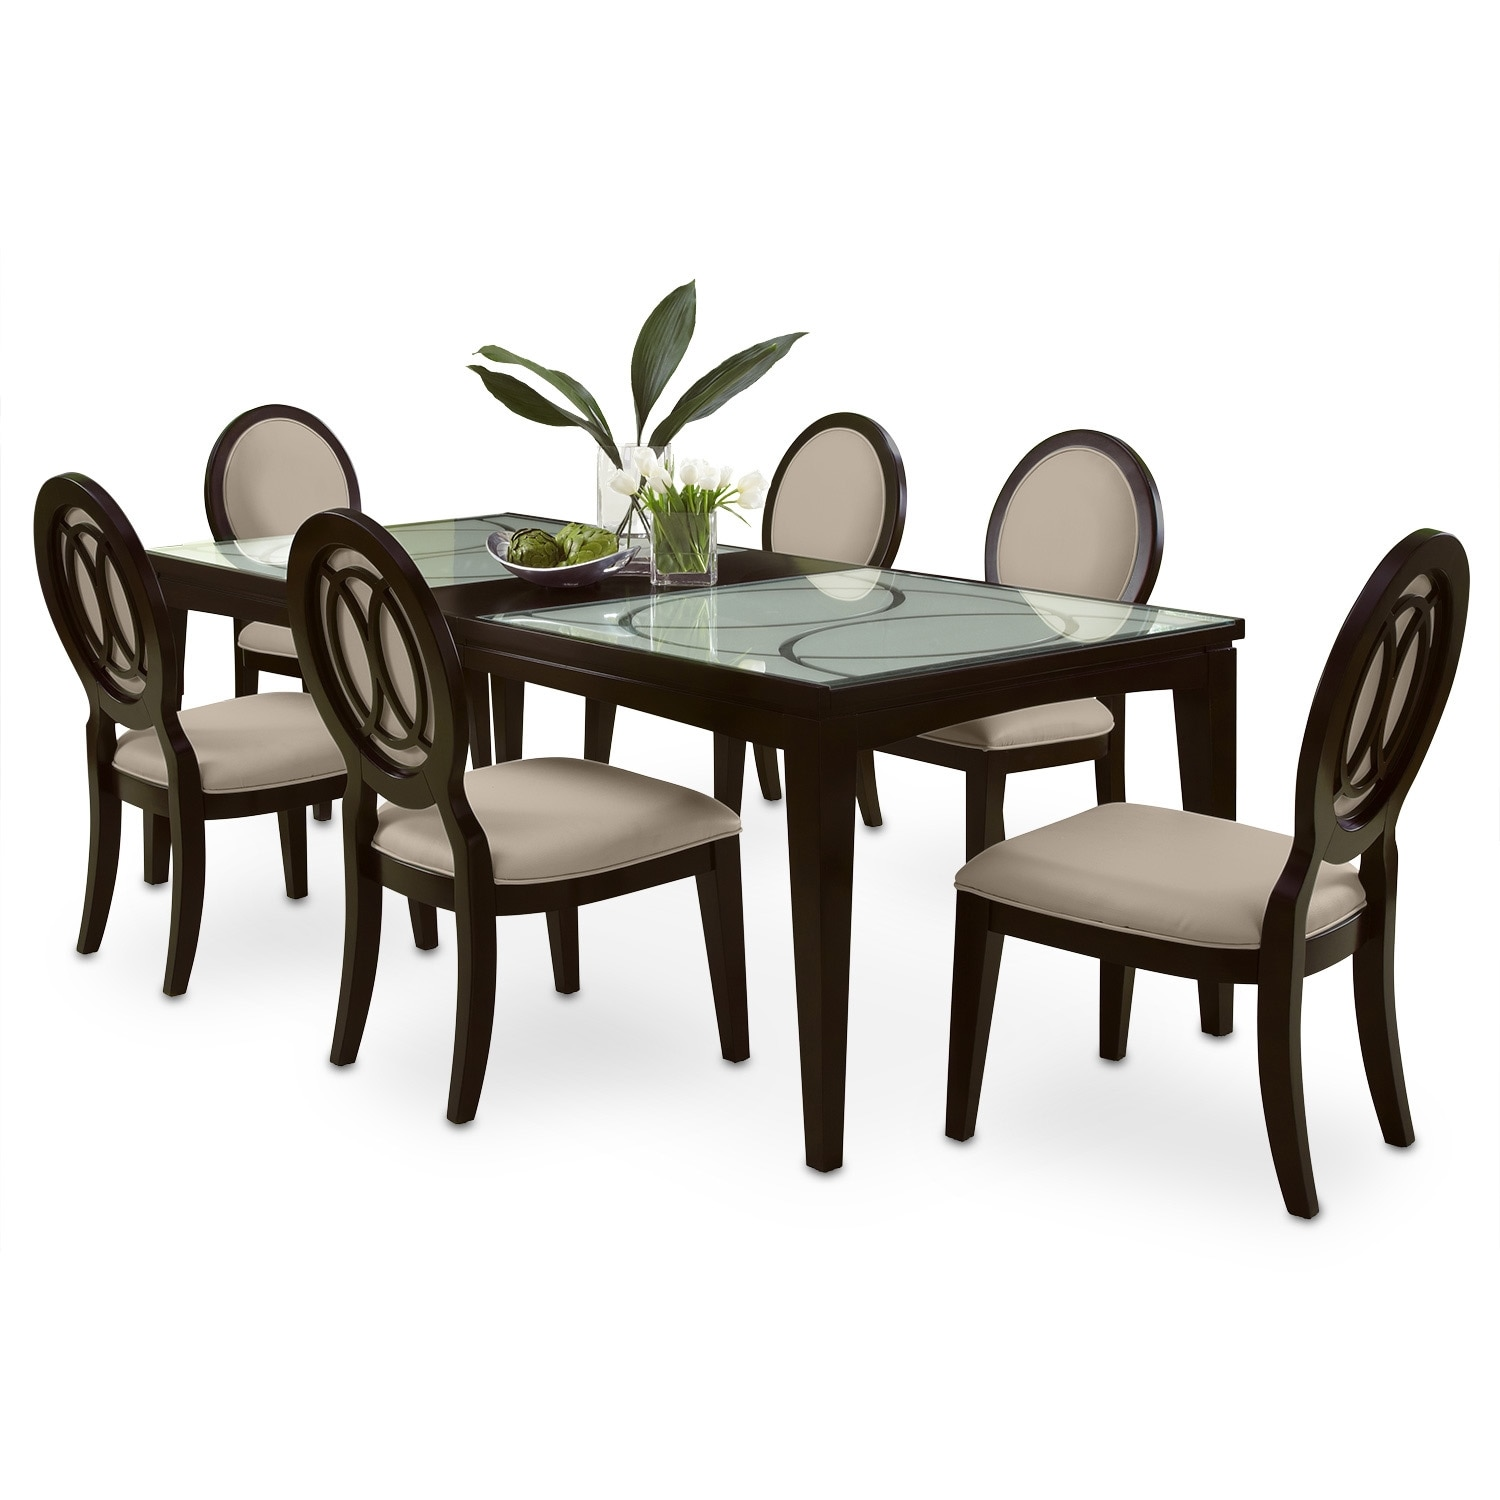 Cosmo table and 6 chairs merlot american signature for Table furniture